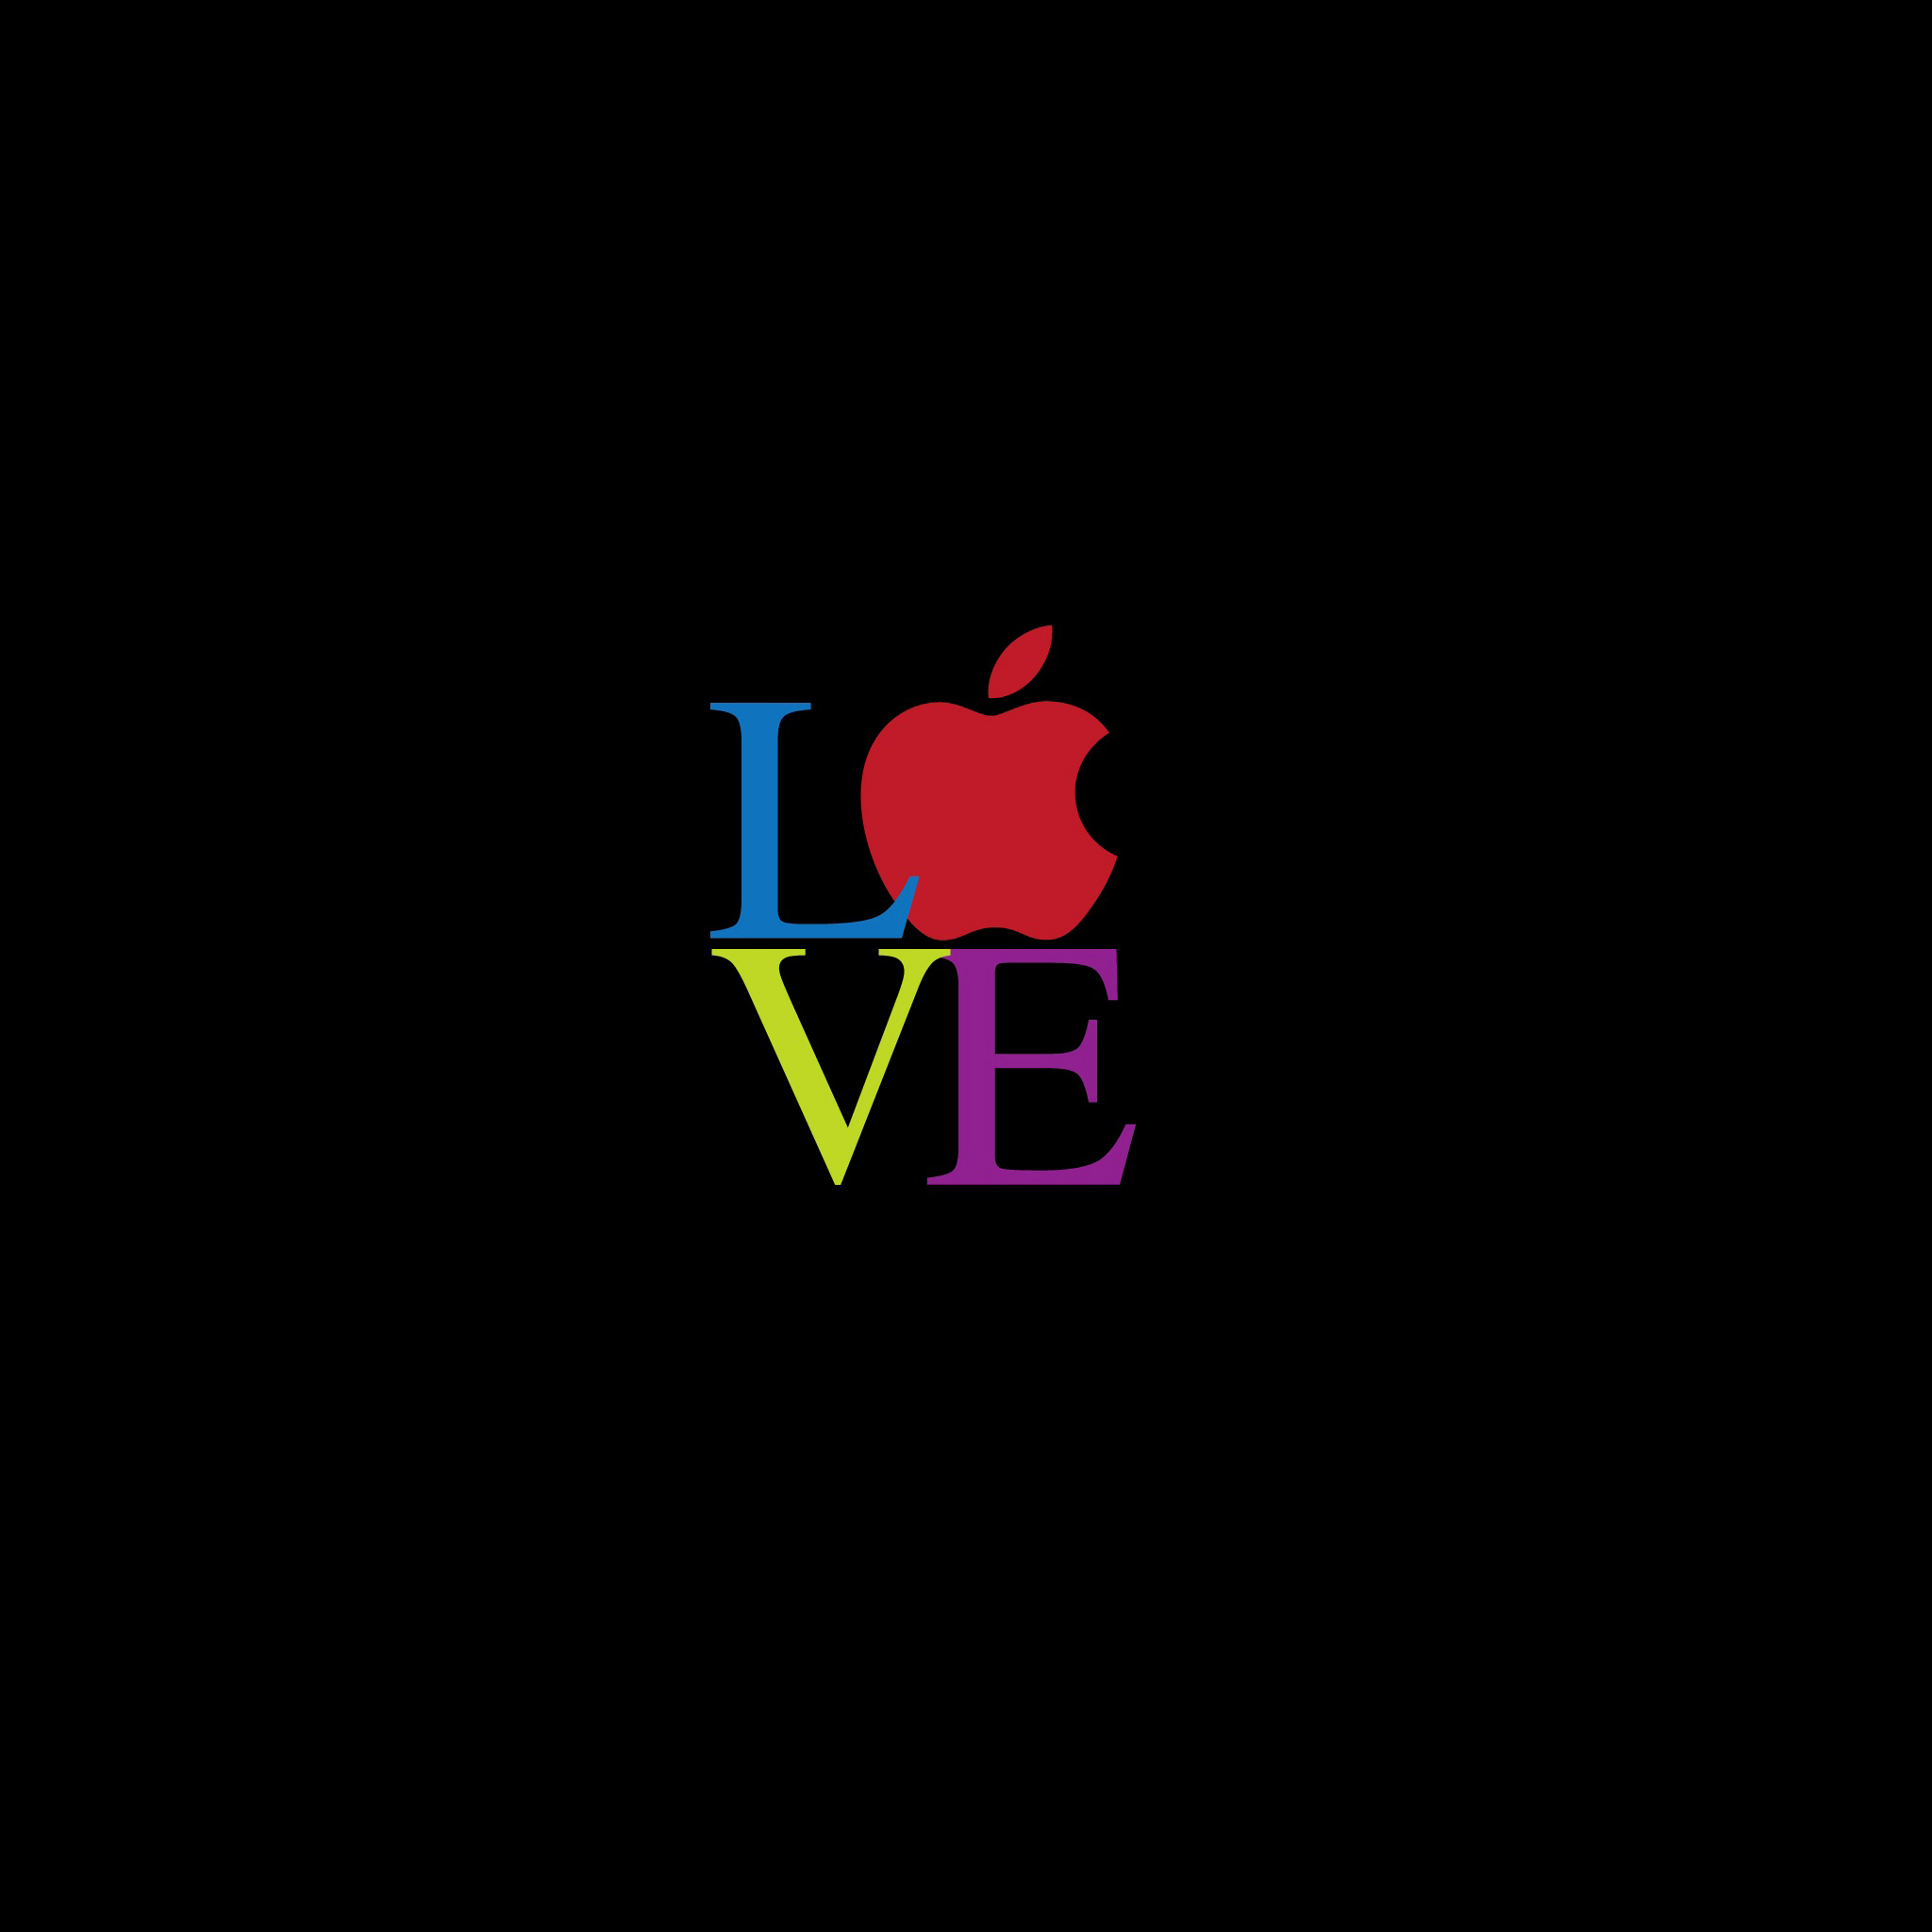 love-Apple-3Wallpapers-ipad-Retina